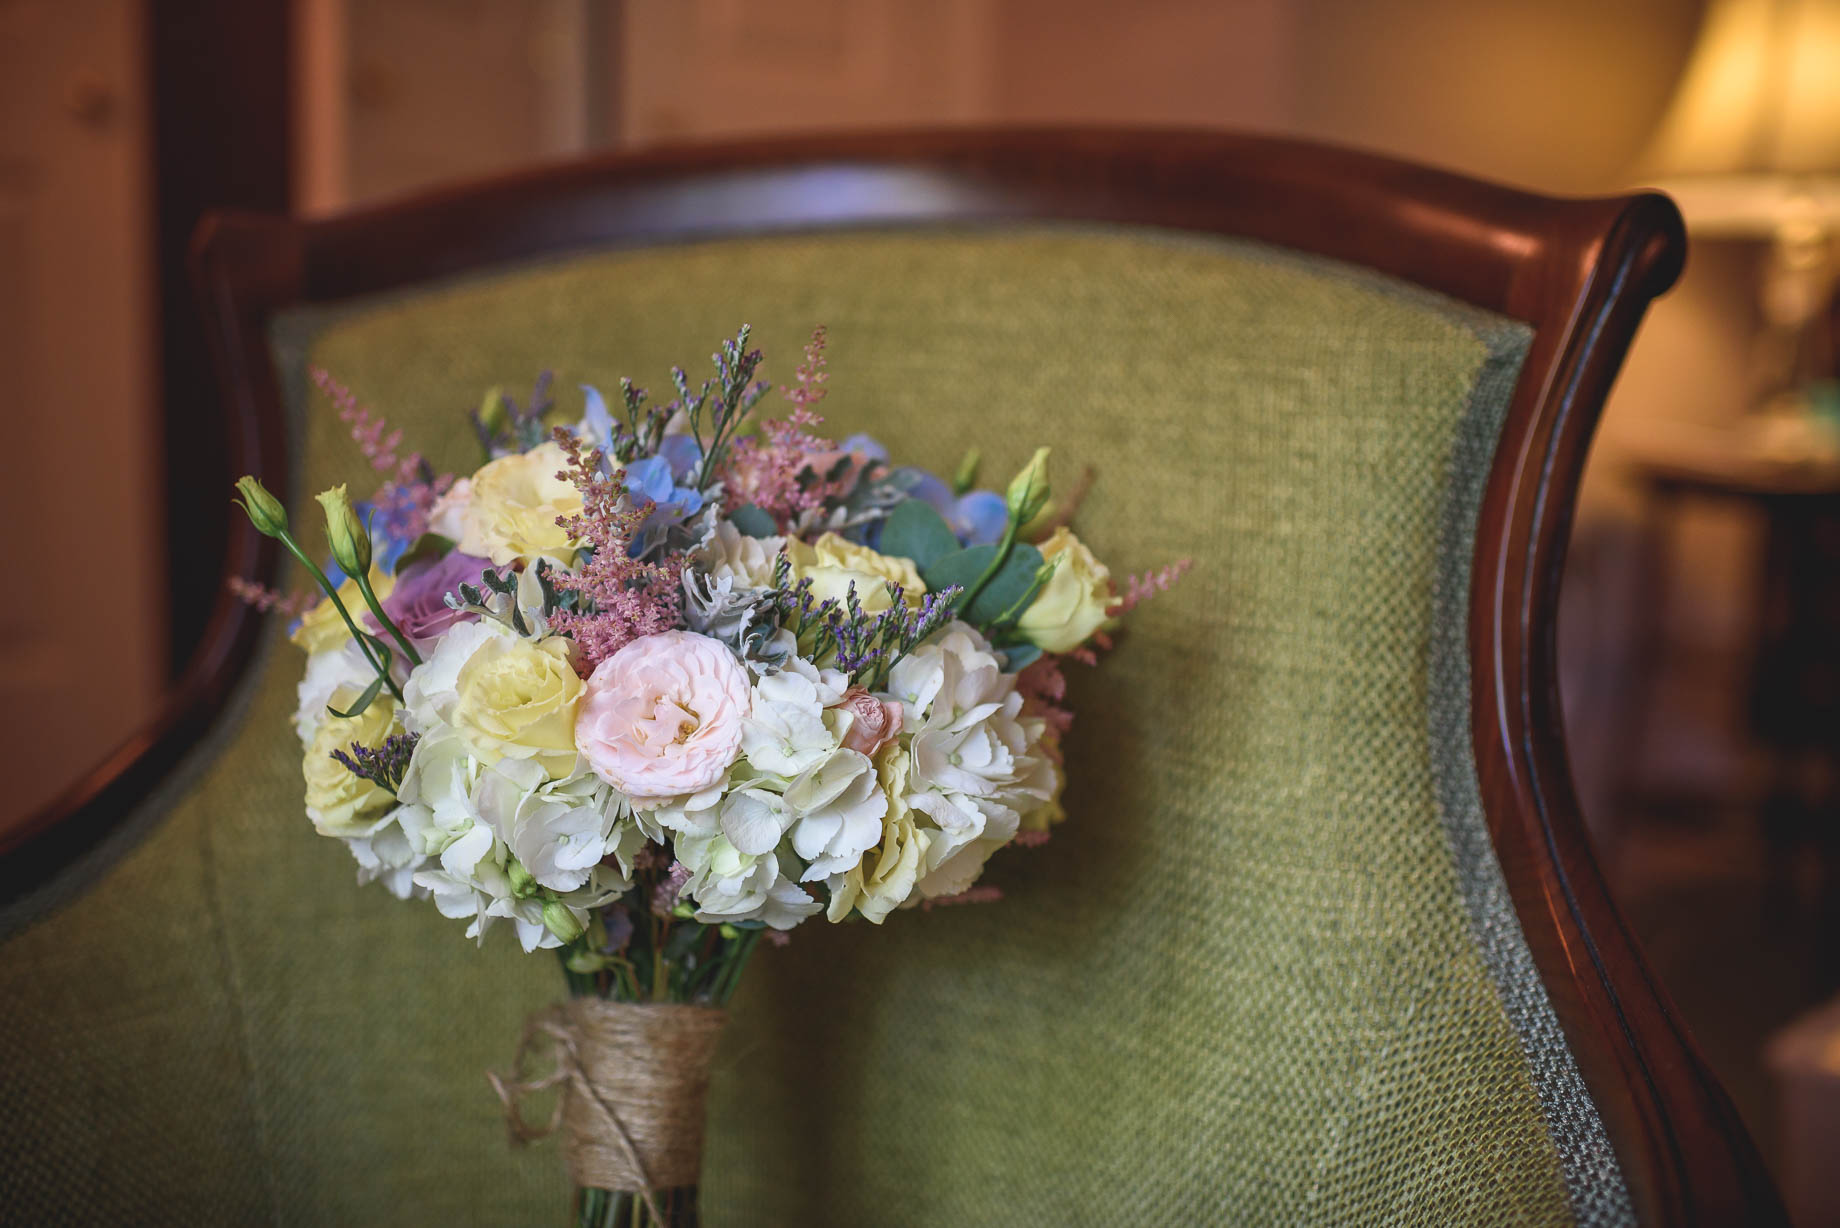 Luton Hoo wedding photography by Guy Collier Photography - Lauren and Gem (13 of 178)